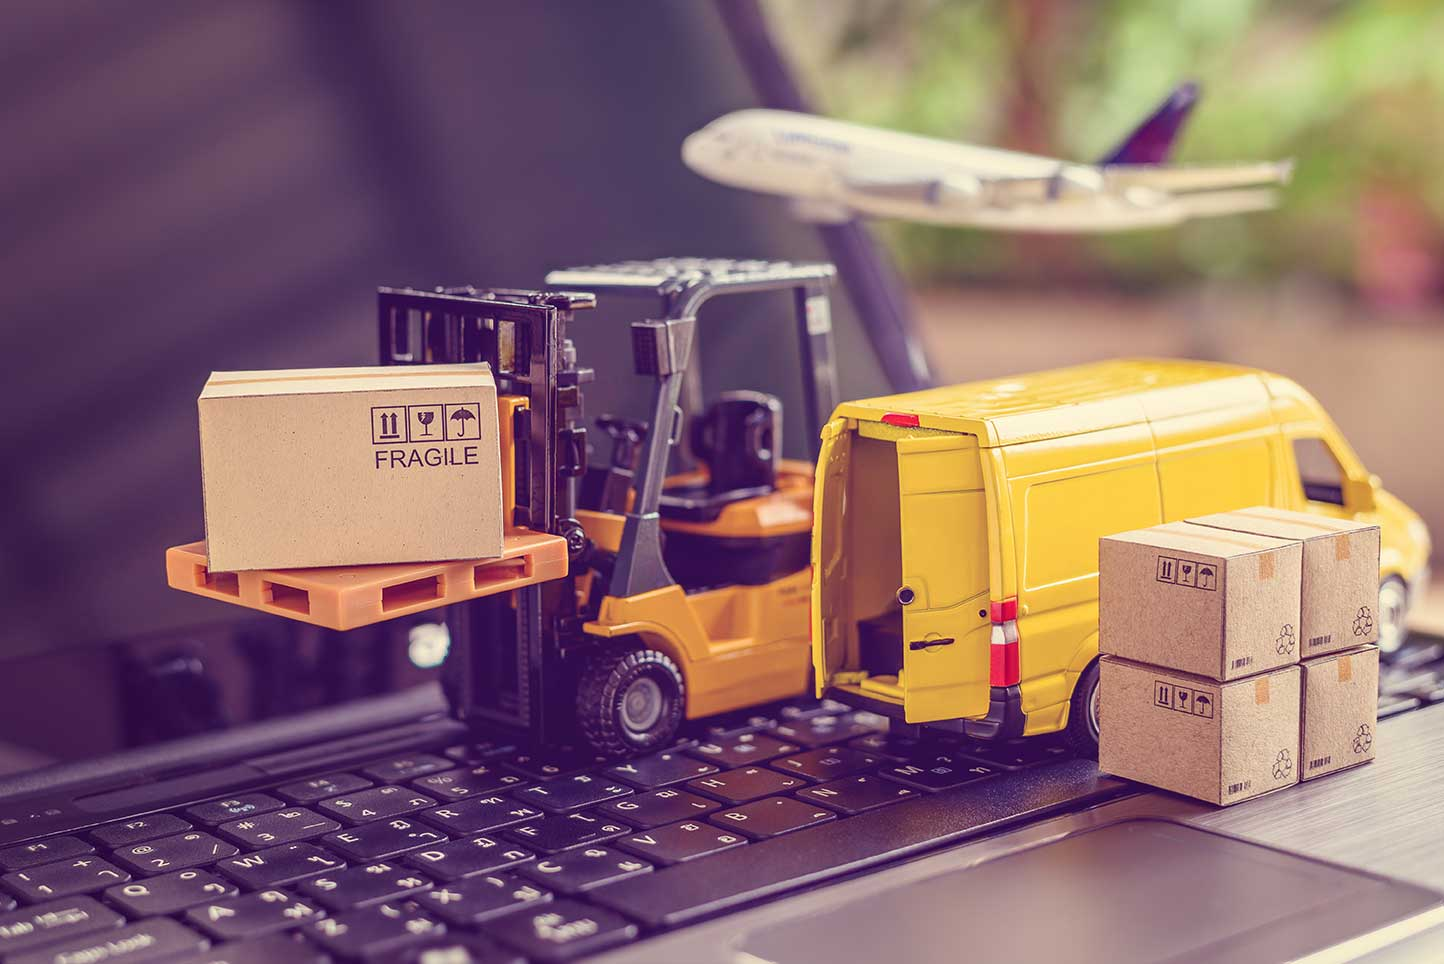 The Strategic Vs Tactical approach to Supply Chain Integration